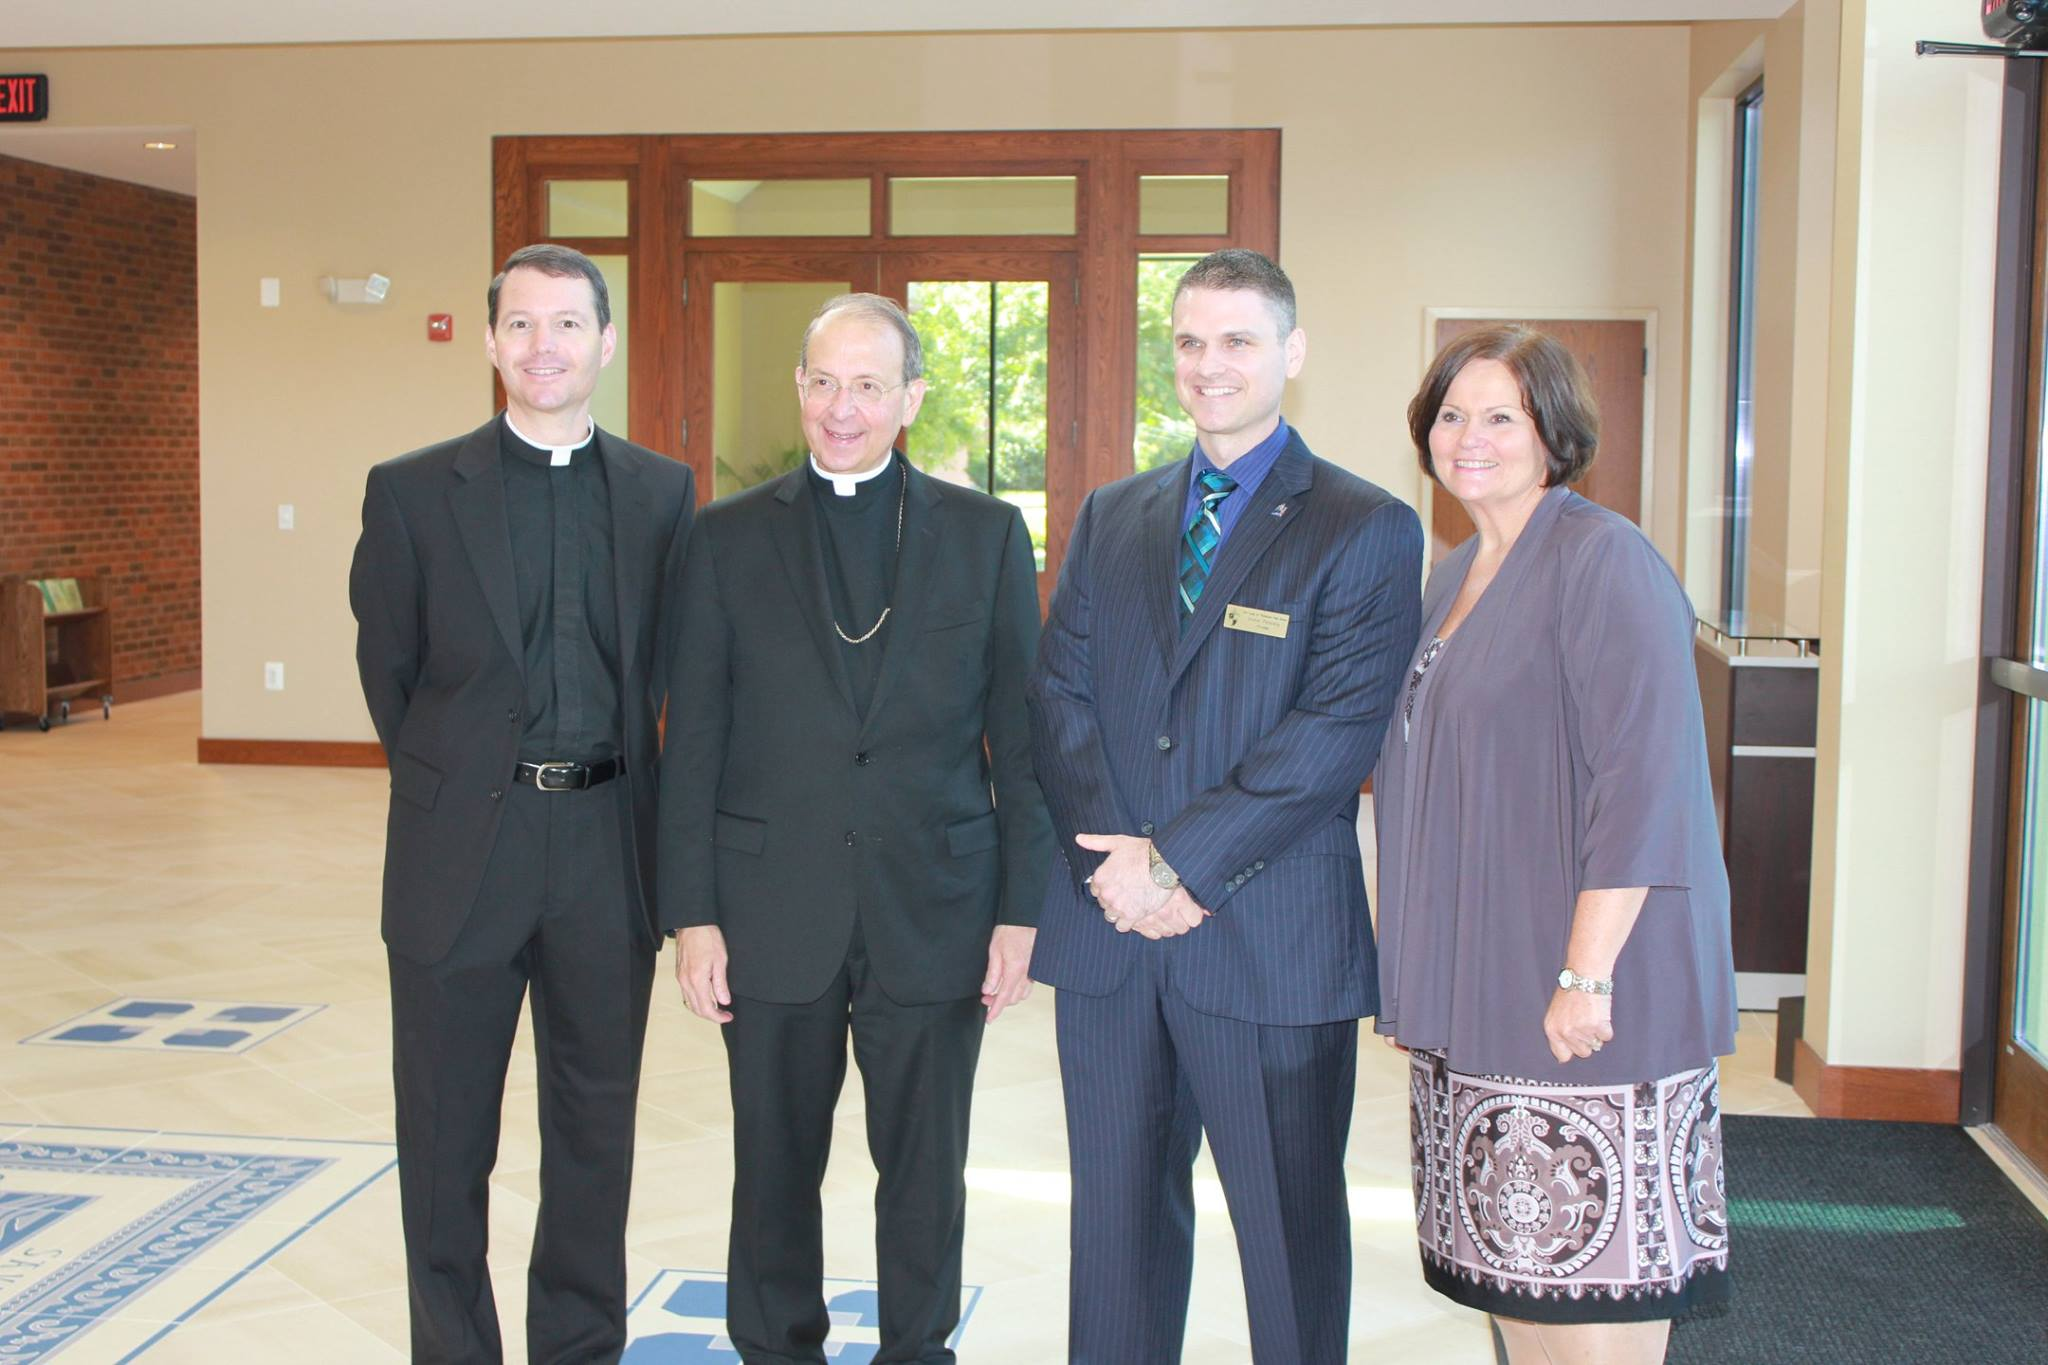 OLPH School Welcomed Archbishop Lori and Superintendent of Schools, Dr. Barbara Edmondson